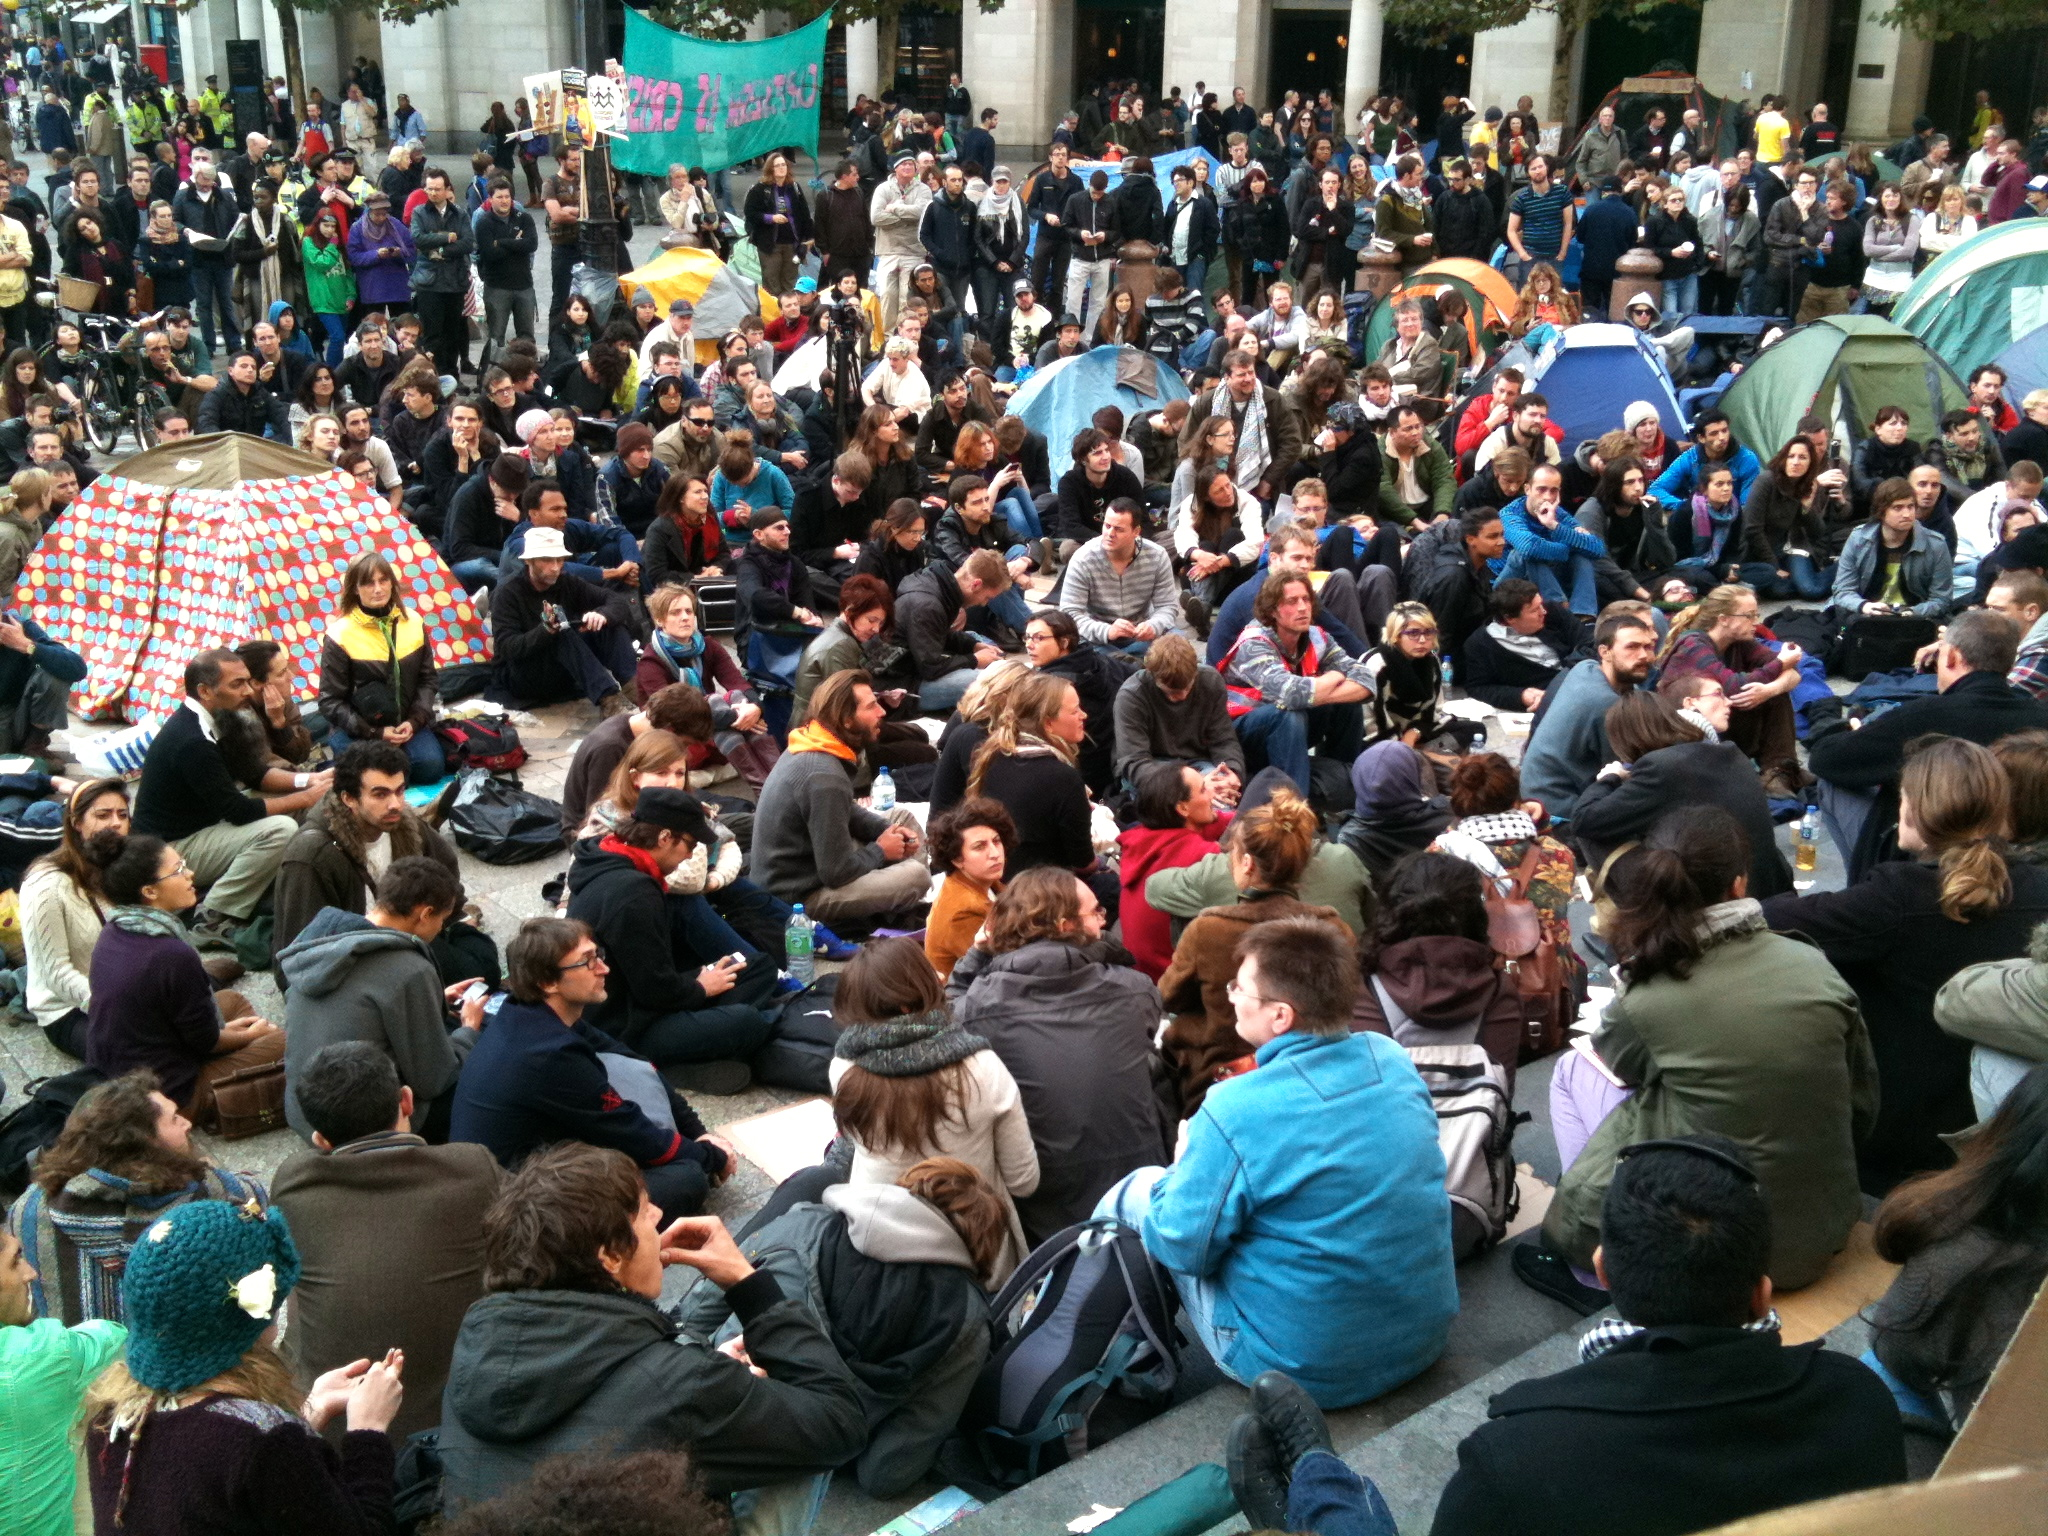 File:Occupy London - Public Assembly.jpg - Wikimedia Commons